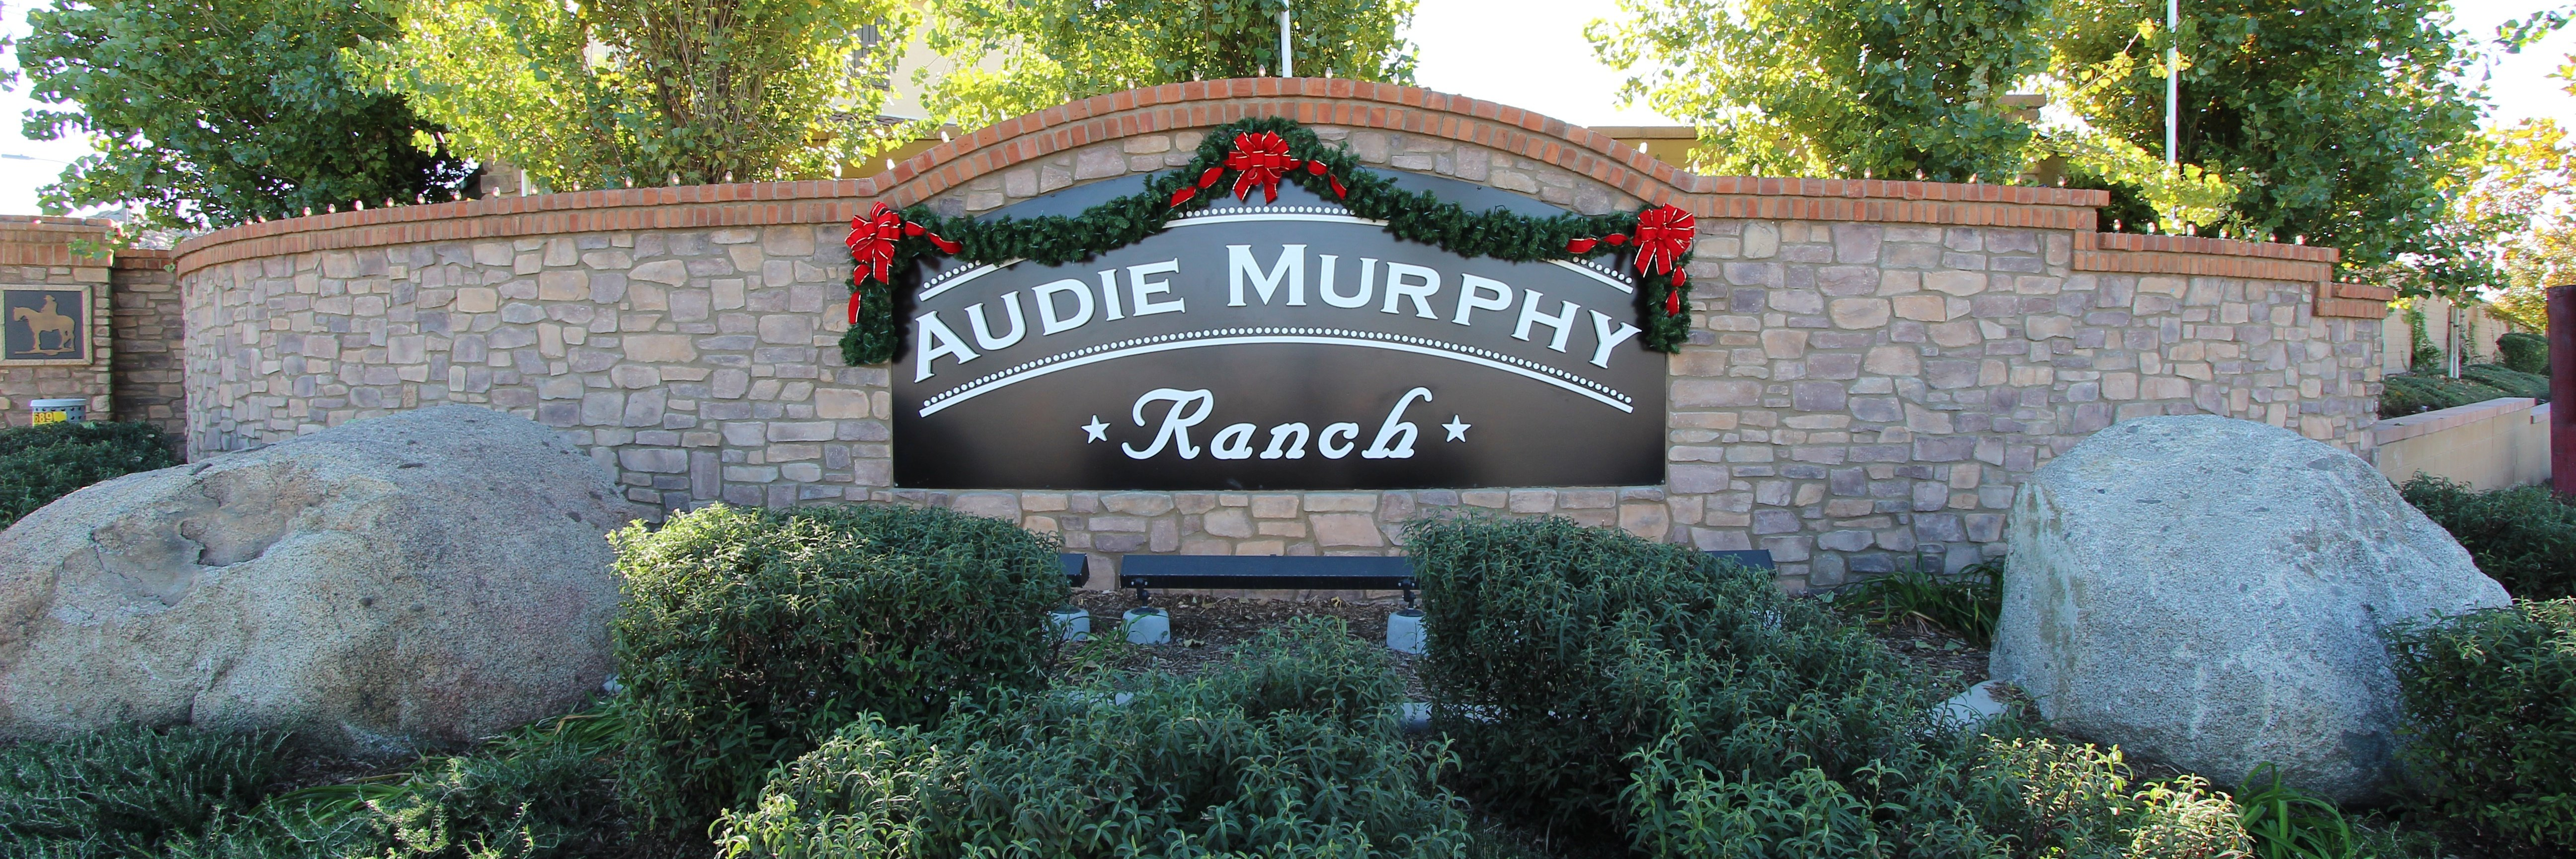 Audie Murphy Ranch Community Marquee in Menifee Ca